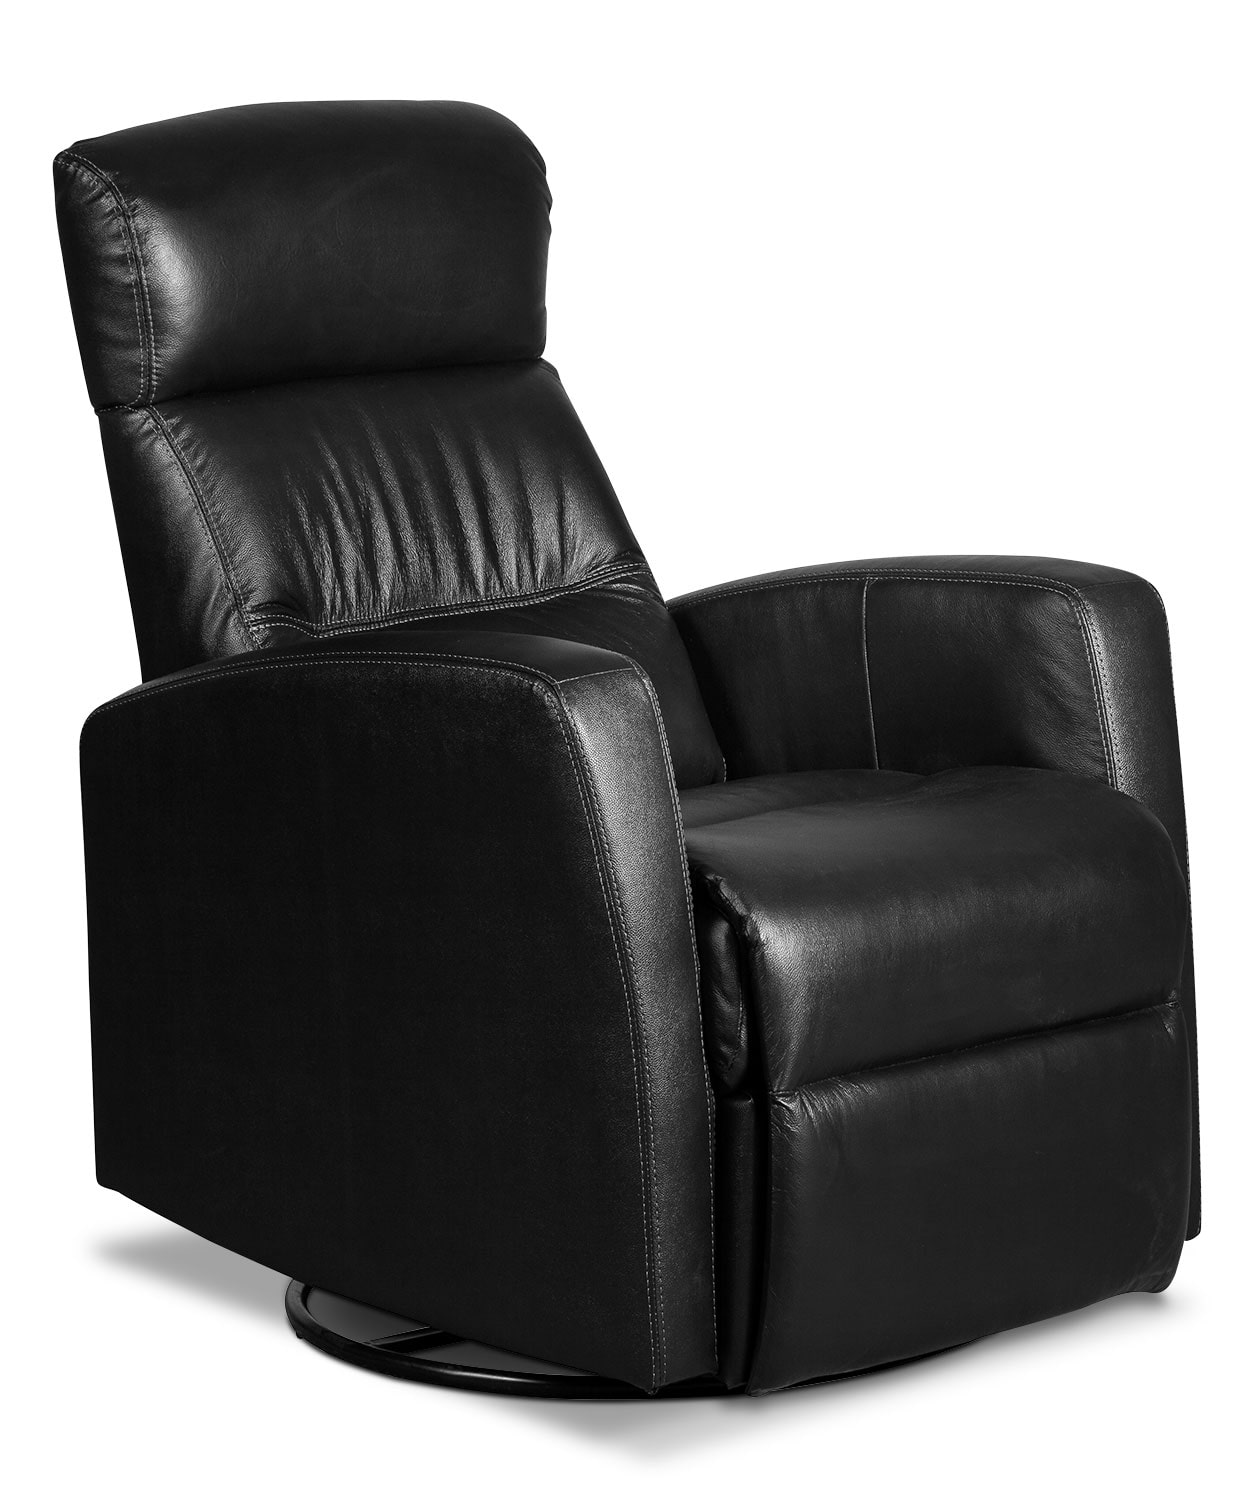 penny genuine leather swivel rocker reclining chair black the brick. Black Bedroom Furniture Sets. Home Design Ideas